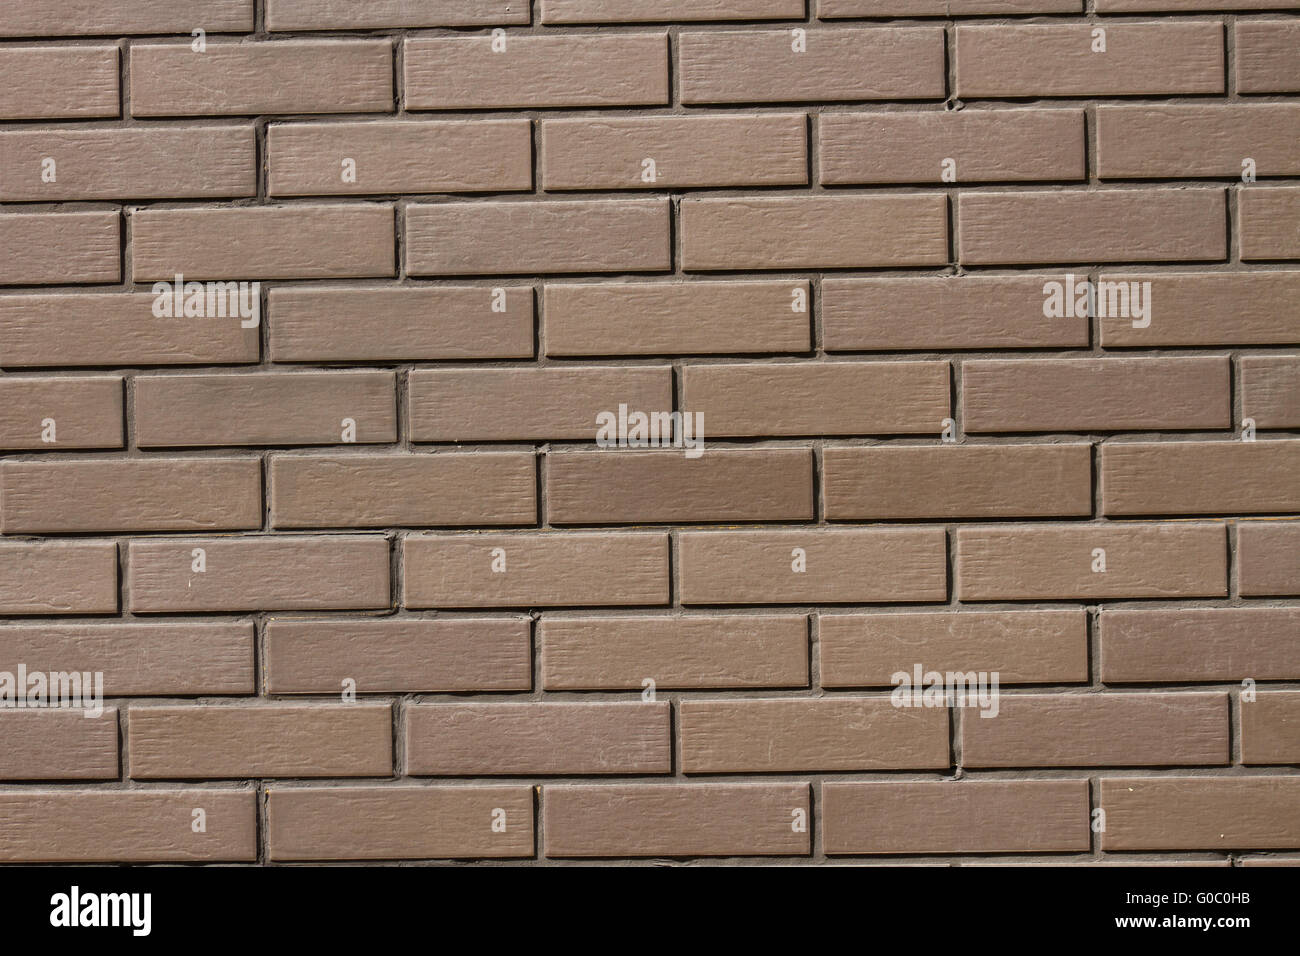 Background. Red brick with white veins - Stock Image